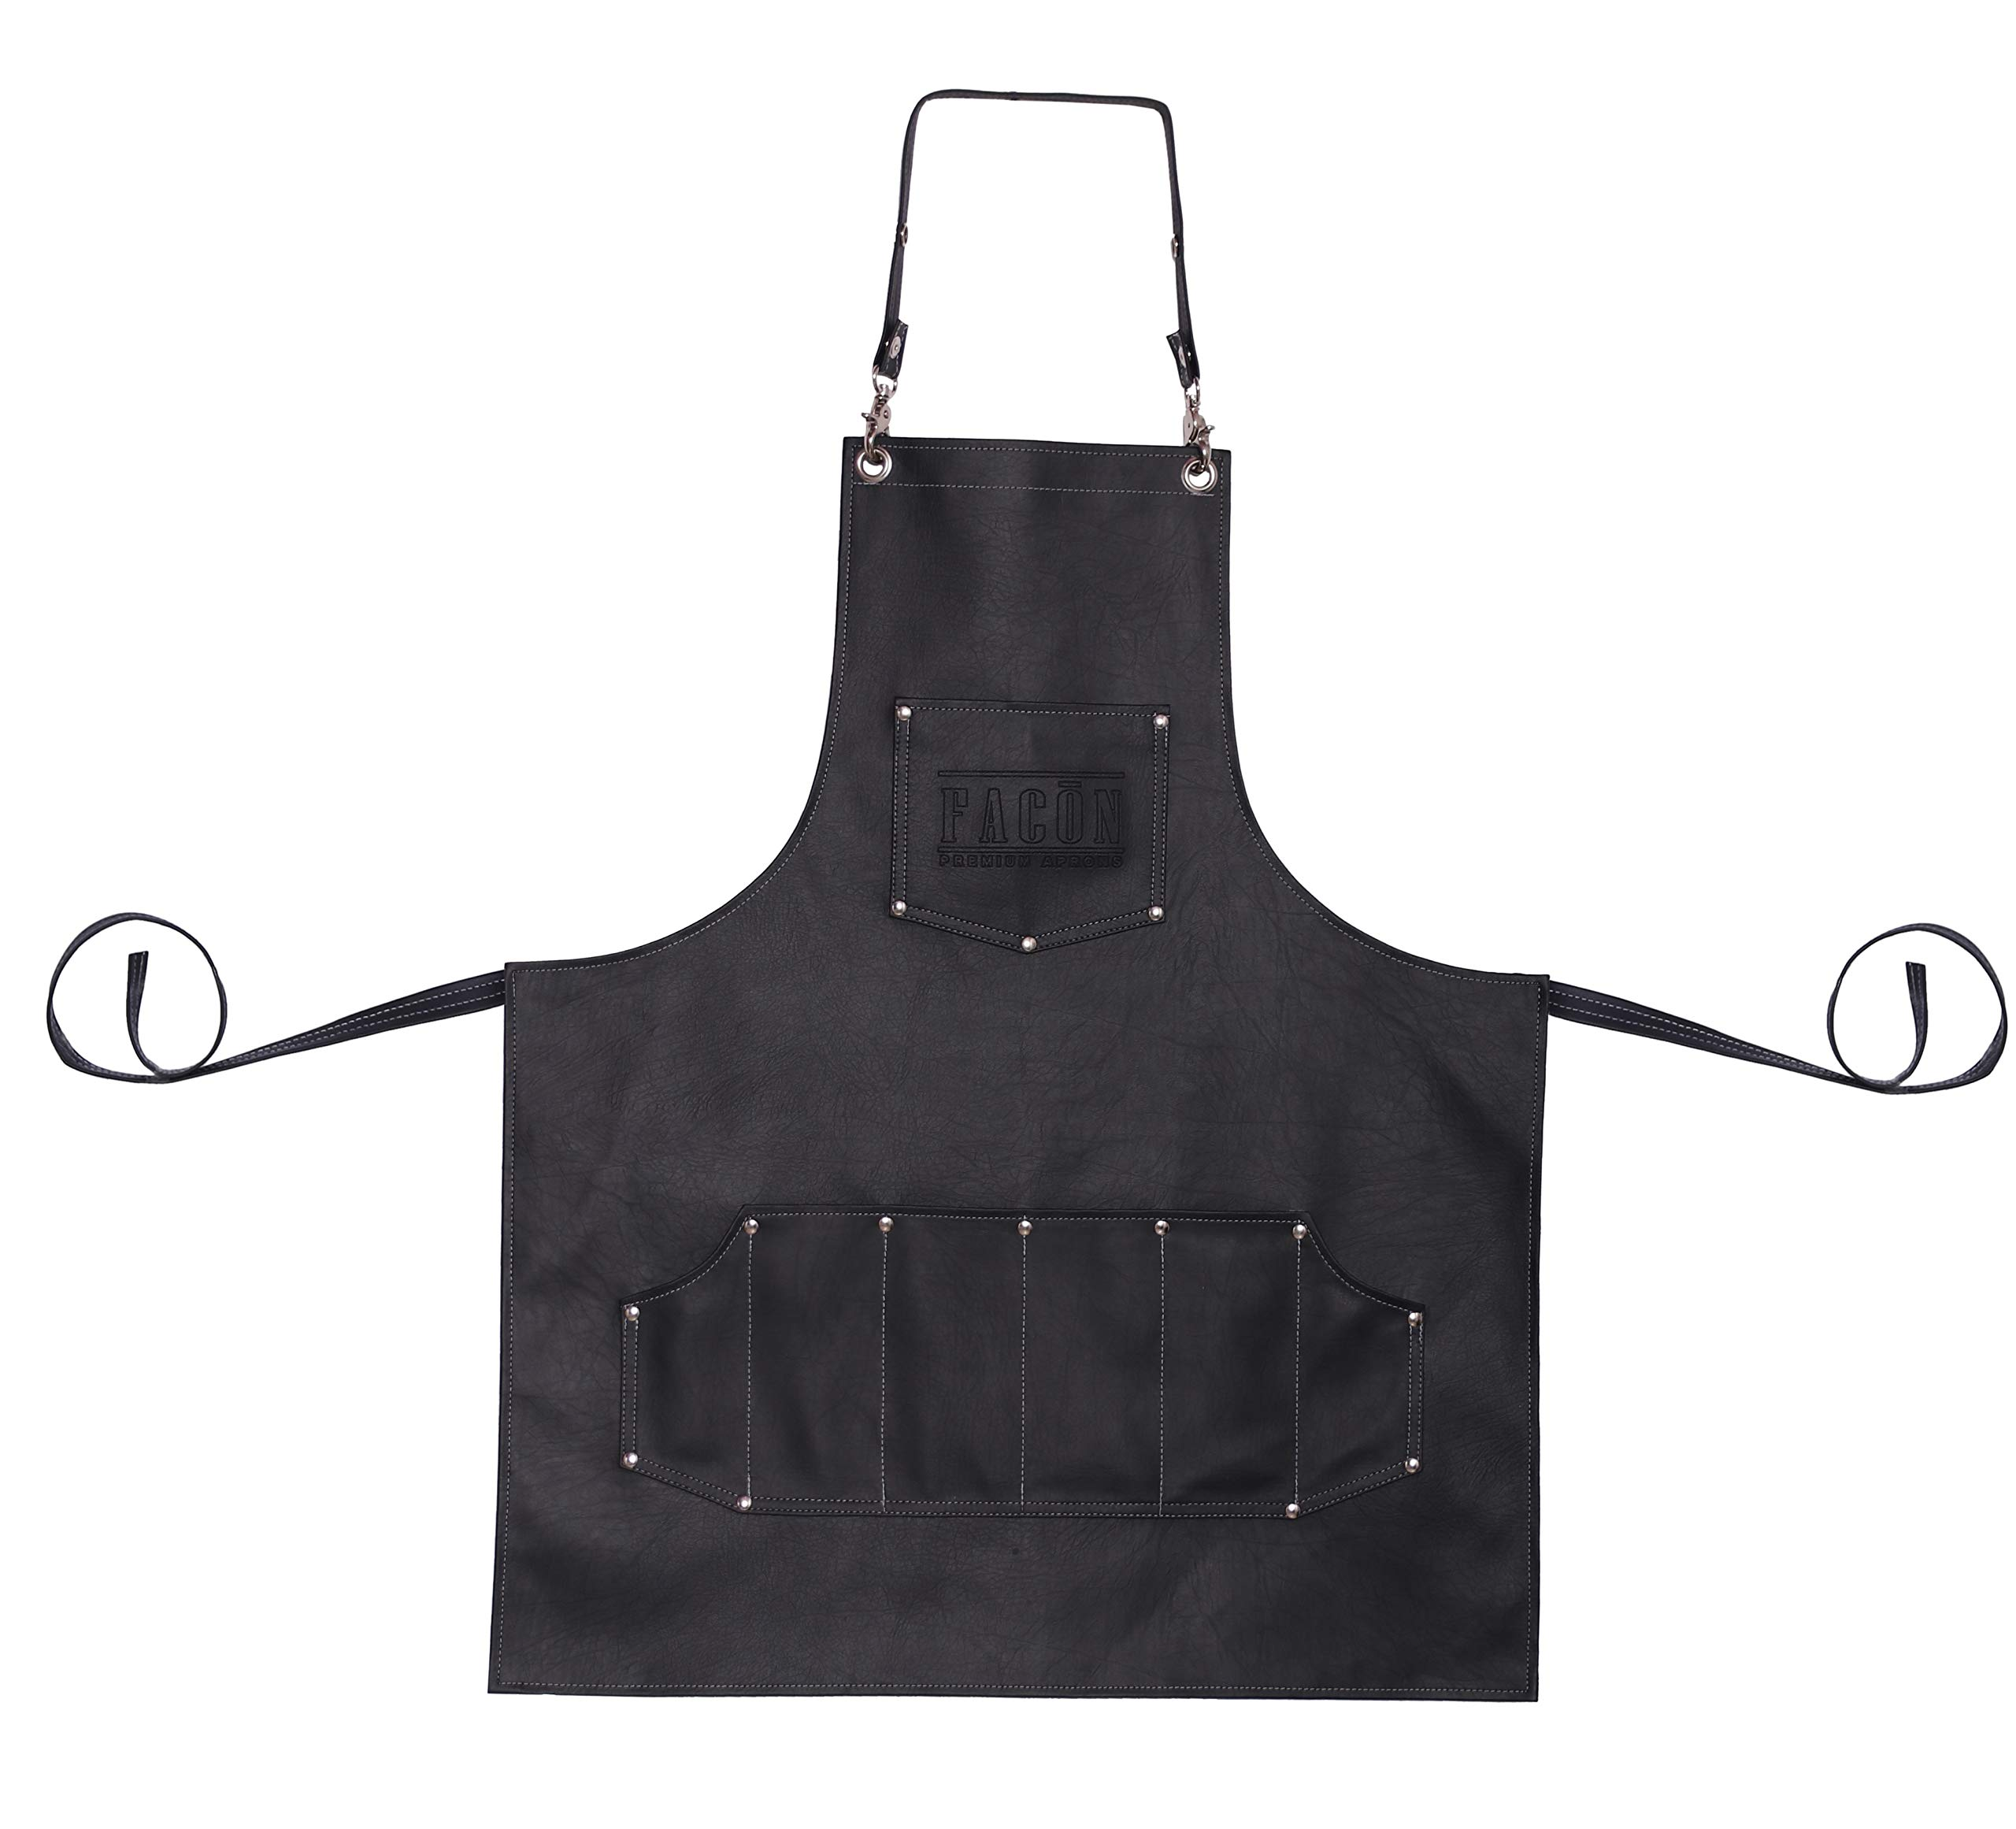 Facón Professional Leather Hair Cutting Hairdressing Barber Apron Cape for Salon Hairstylist - Multi-use, Adjustable with 7 Pockets - Heavy Duty Premium Quality - Limited Edition - 30'' x 24'' (Black) by FACON (Image #9)